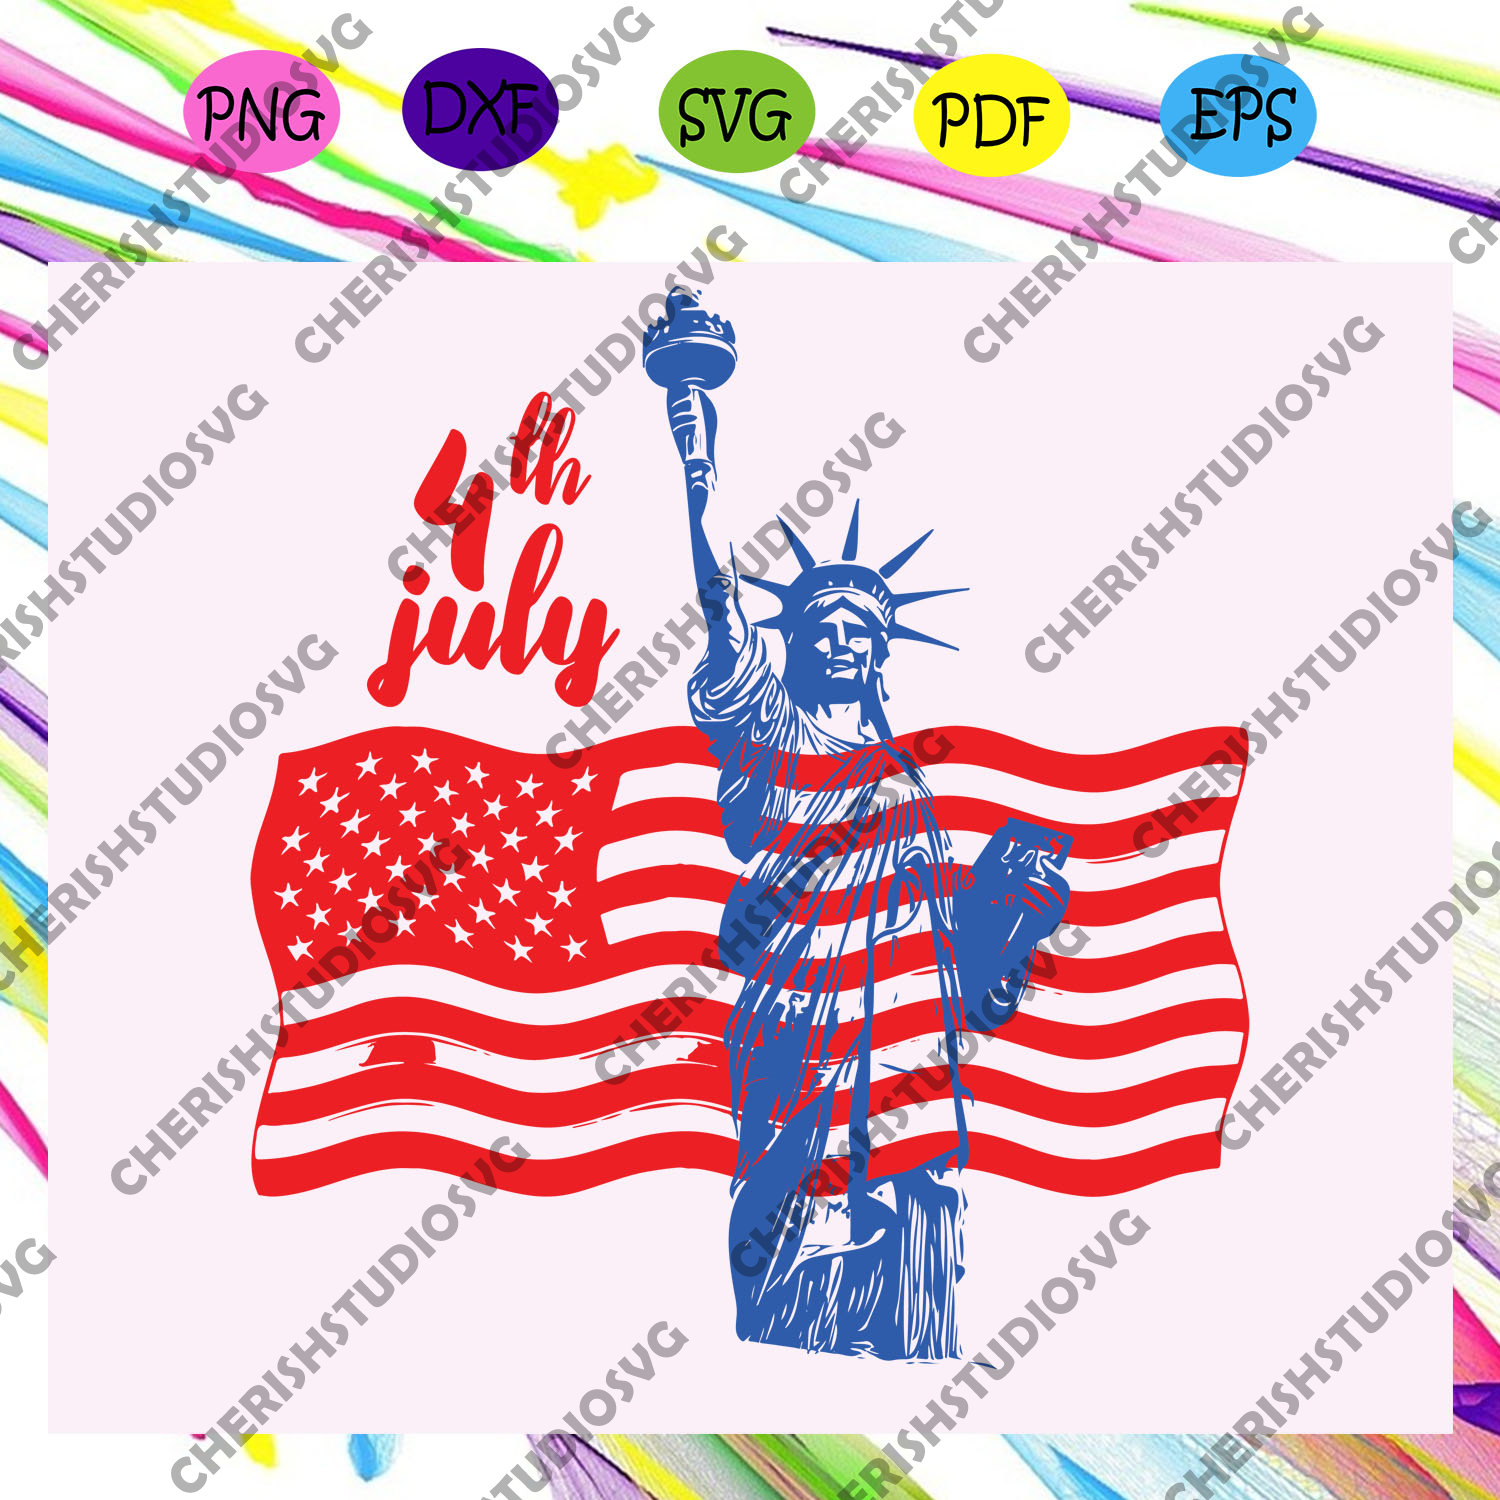 4th of July , Statue of Liberty, independence day svg, happy 4th of july svg,patriotic svg, independence day gift, For Silhouette, Files For Cricut, SVG, DXF, EPS, PNG Instant Download